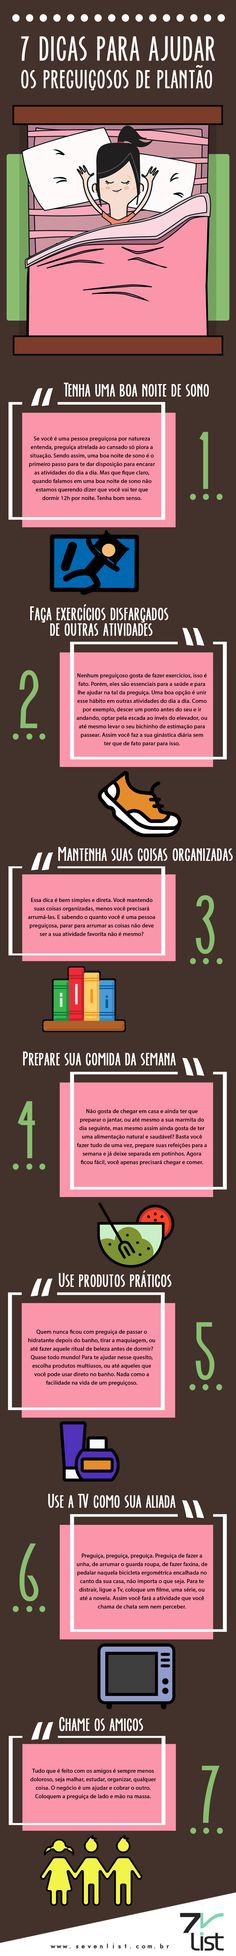 7 dicas para ajudar os preguiçosos de plantão Health And Wellness, Health Care, Health Fitness, Stress, Student Life, Study Tips, Better Life, Self Improvement, Personal Development